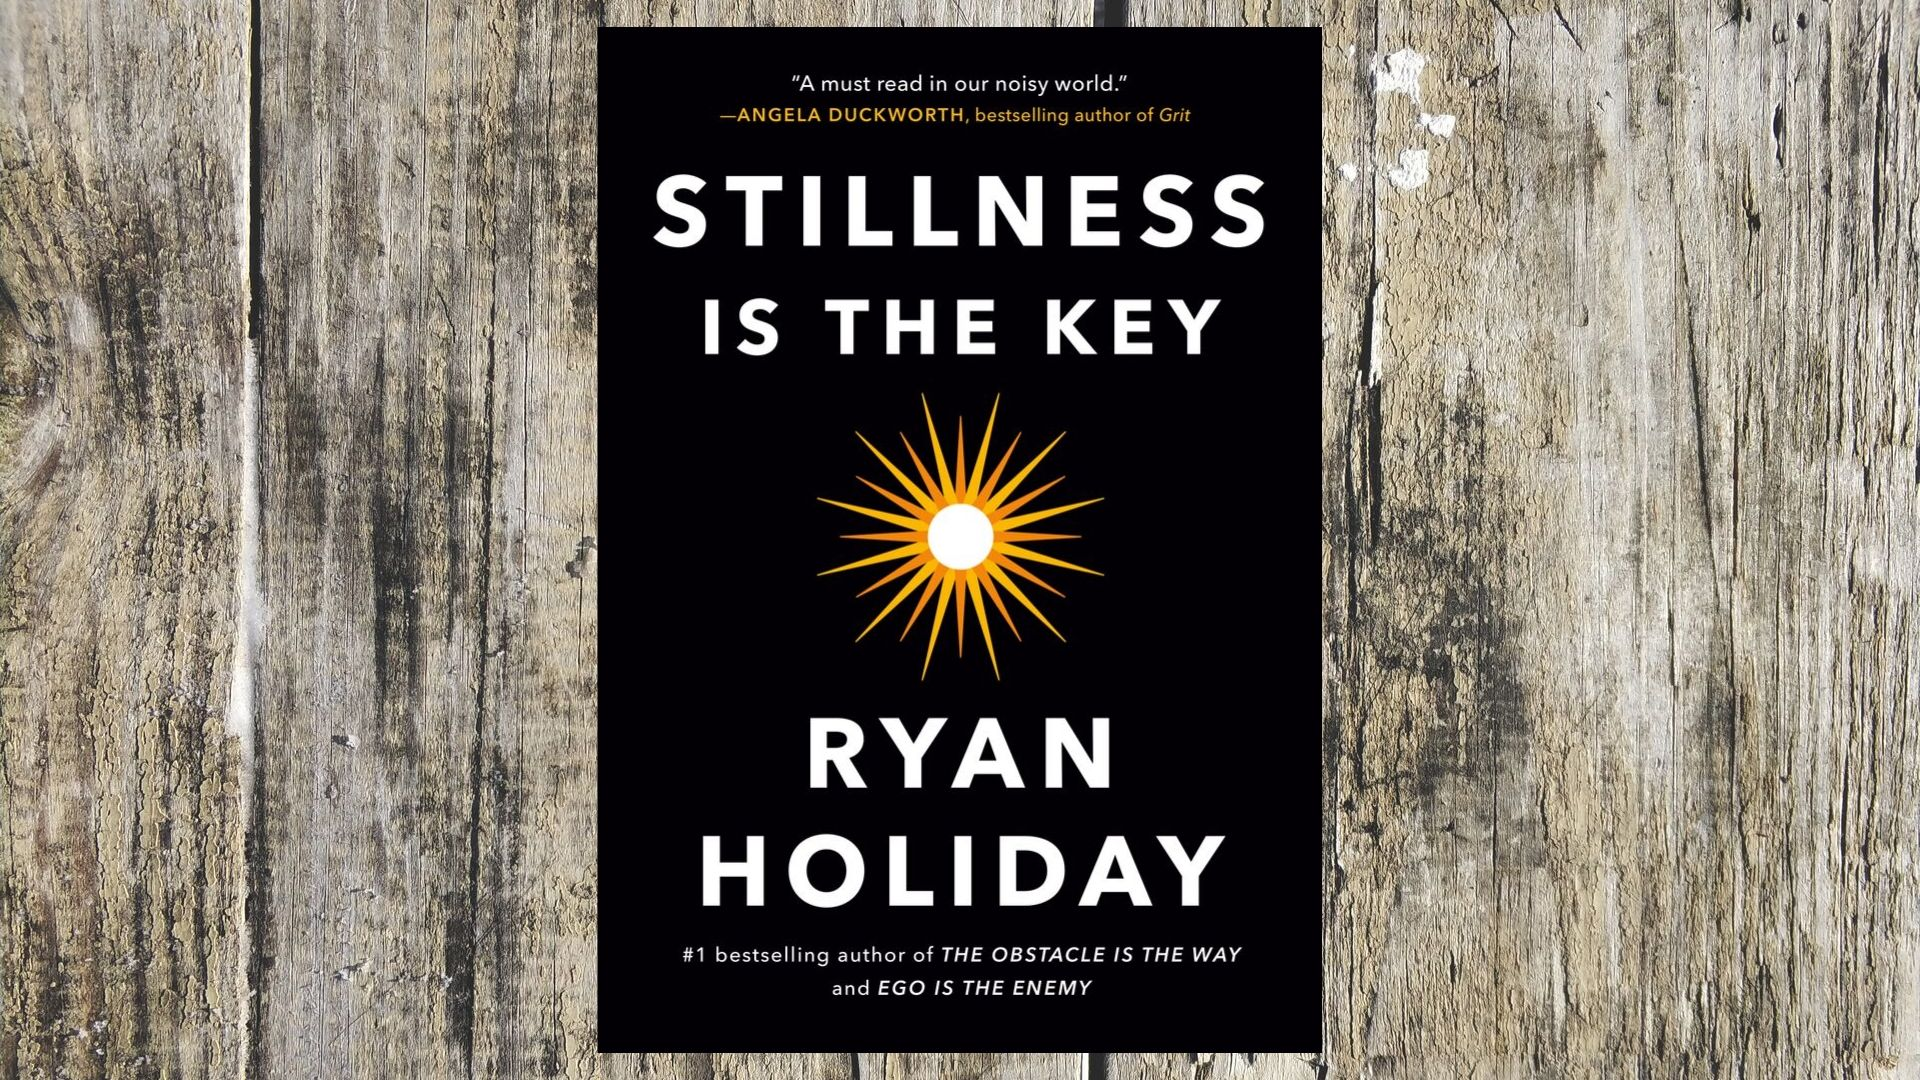 Ryan Holiday's book, Stillness Is The KeyIMAGE COURTESY OF RYAN HOLIDAY